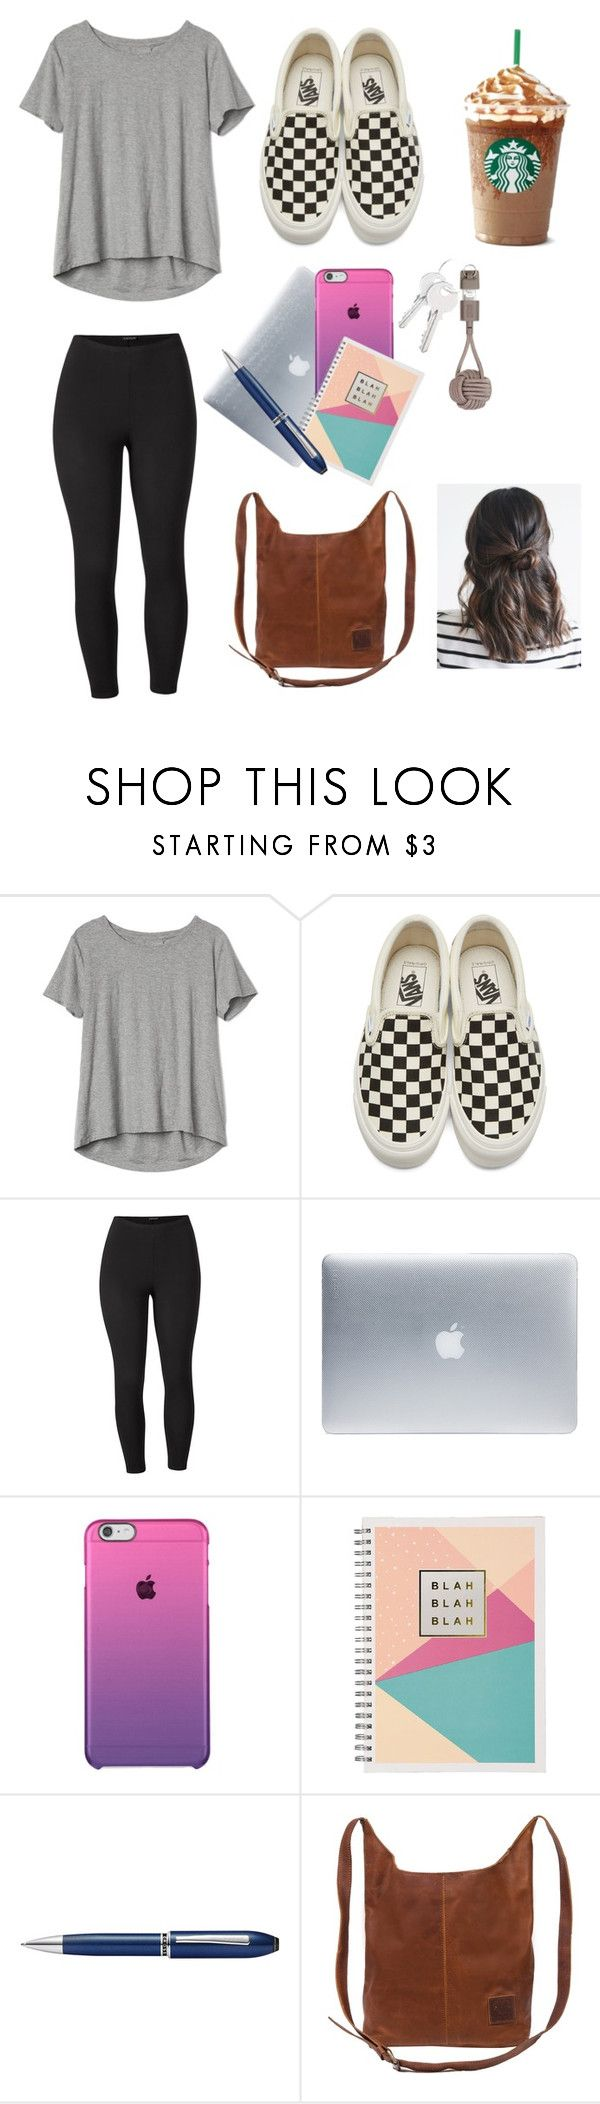 """First day of junior year!!"" by kyleighad ❤ liked on Polyvore featuring Gap, Vans, Venus, Incase, TrackR, Native Union and plus size clothing"